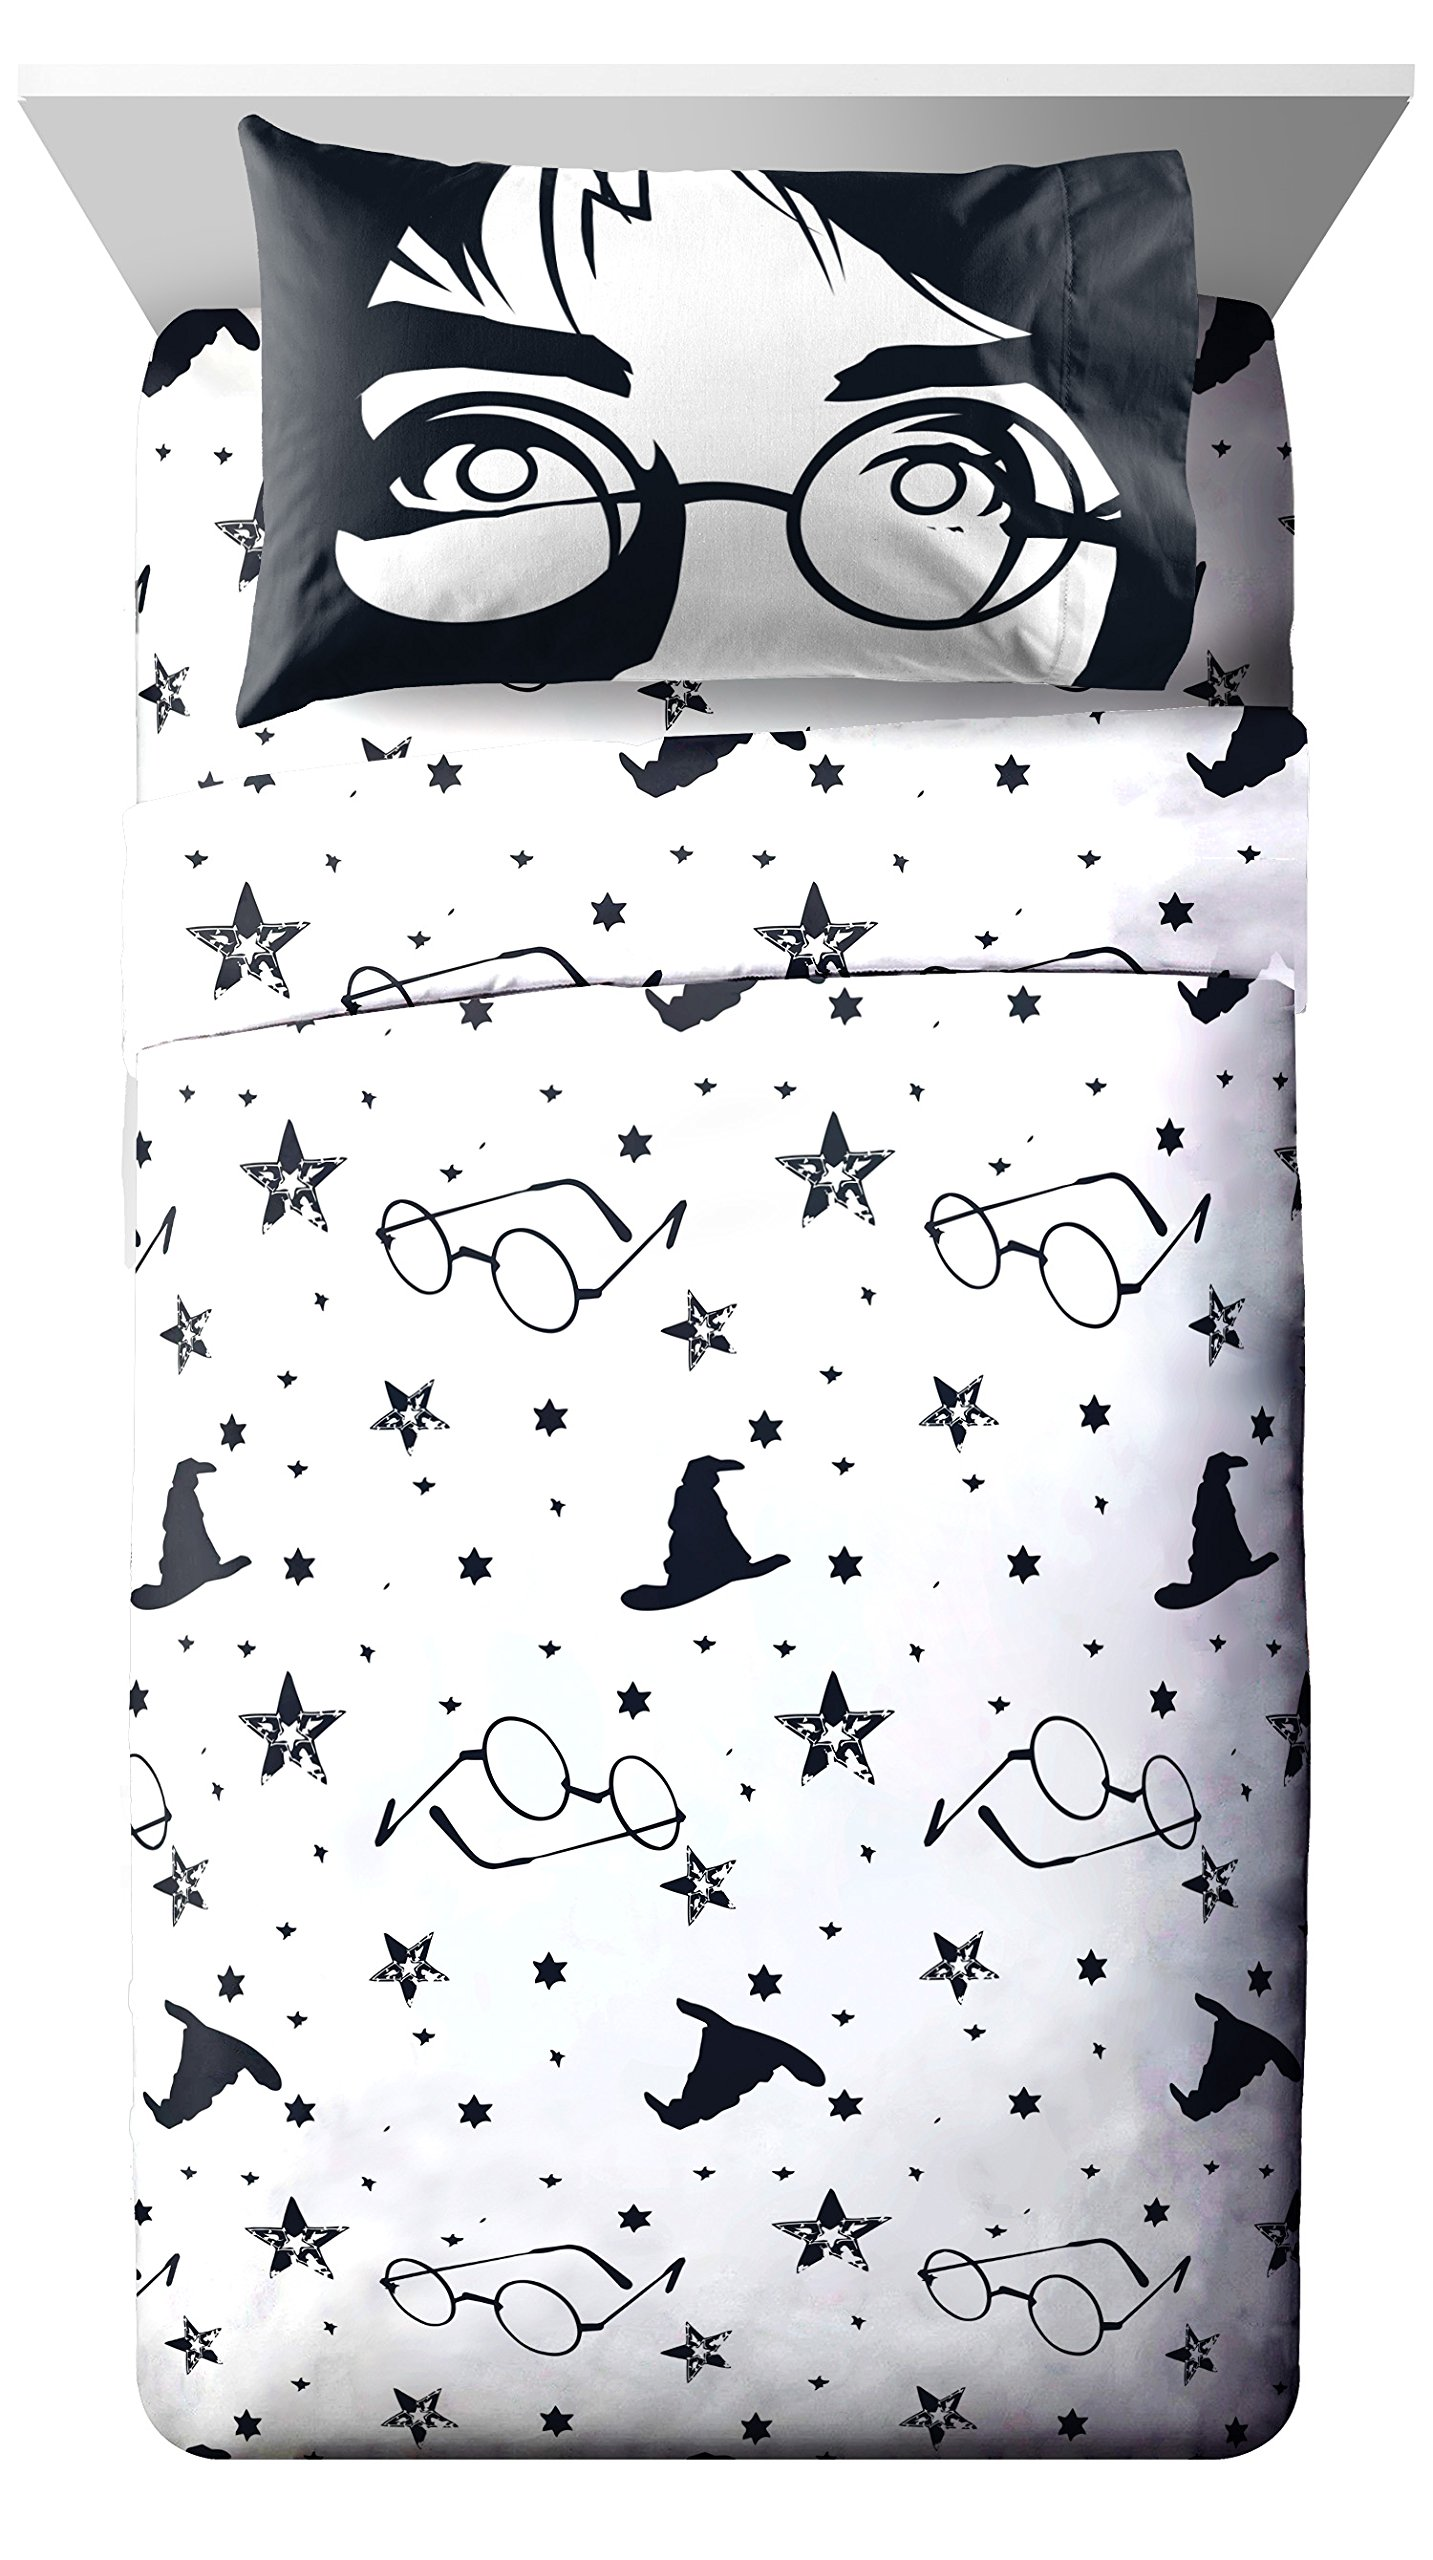 D.I.D. 4 Piece White Black Harry Potter Full Sized Sheet Set, Movie Hogwarts Bedding HP Glasses Wizard Hat Stars Magical Face Fan Gear, Polyester